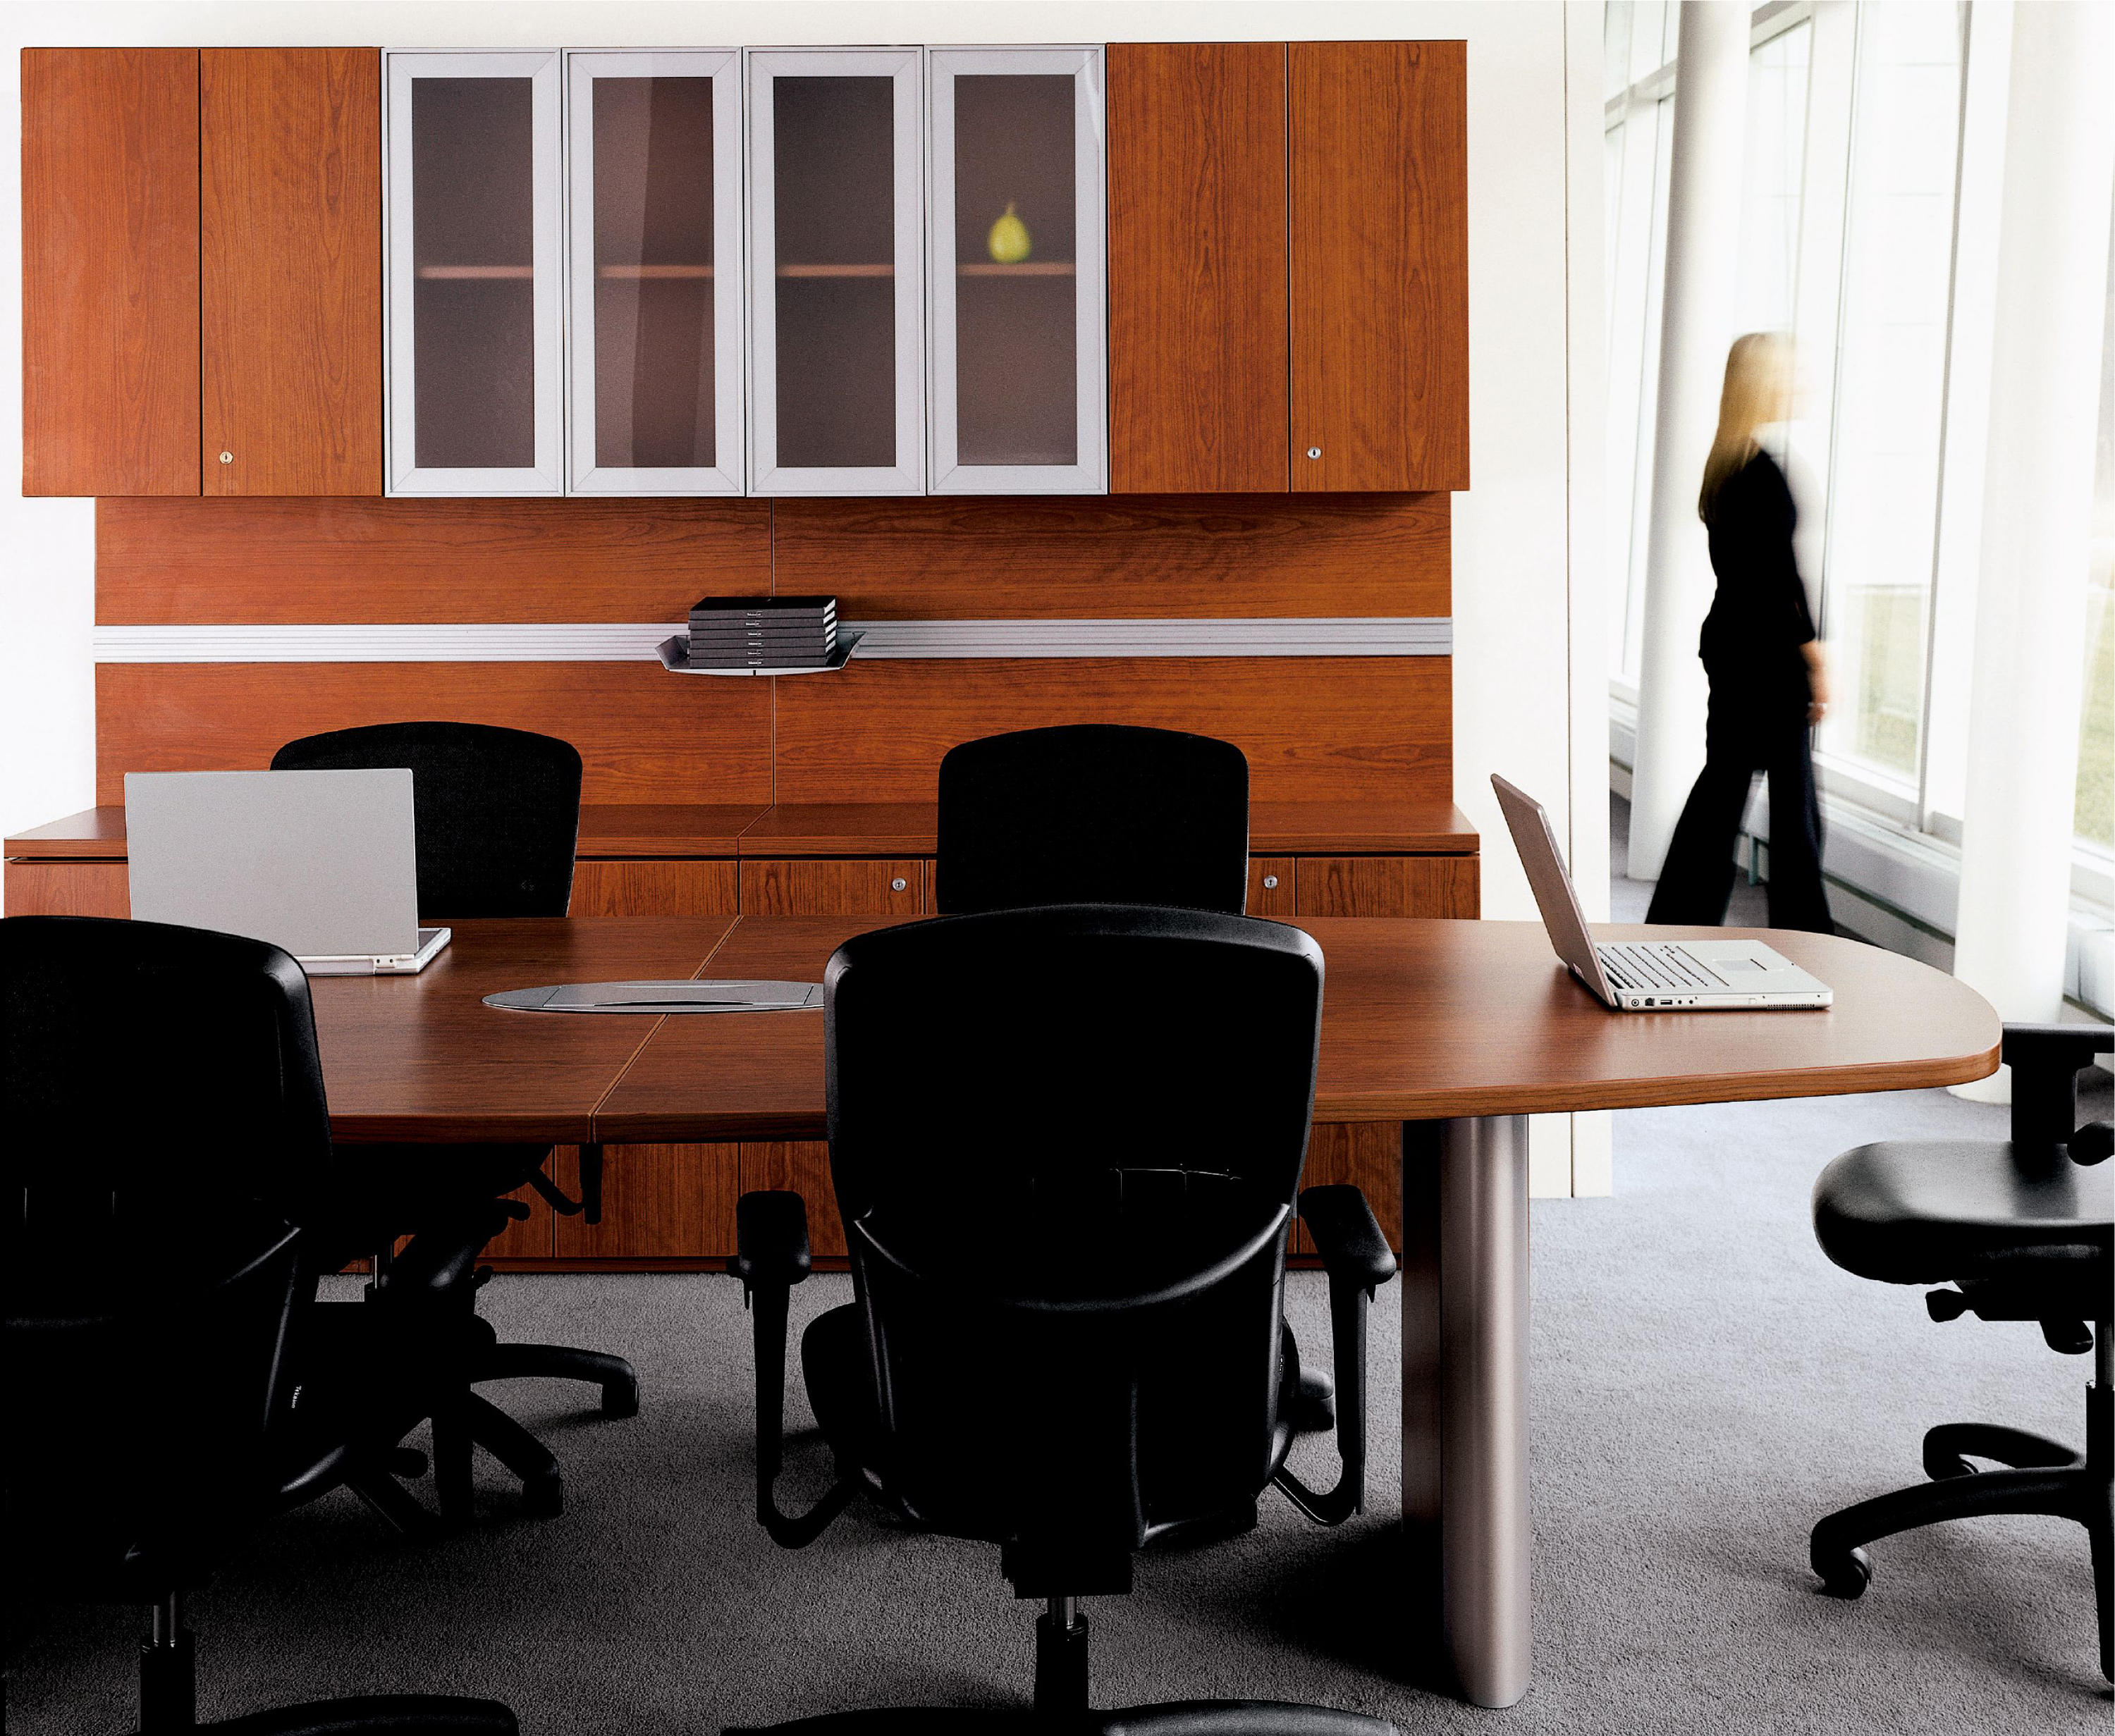 EXPANSION CASEGOODS Contract Tables From Teknion Architonic - Expanding conference table